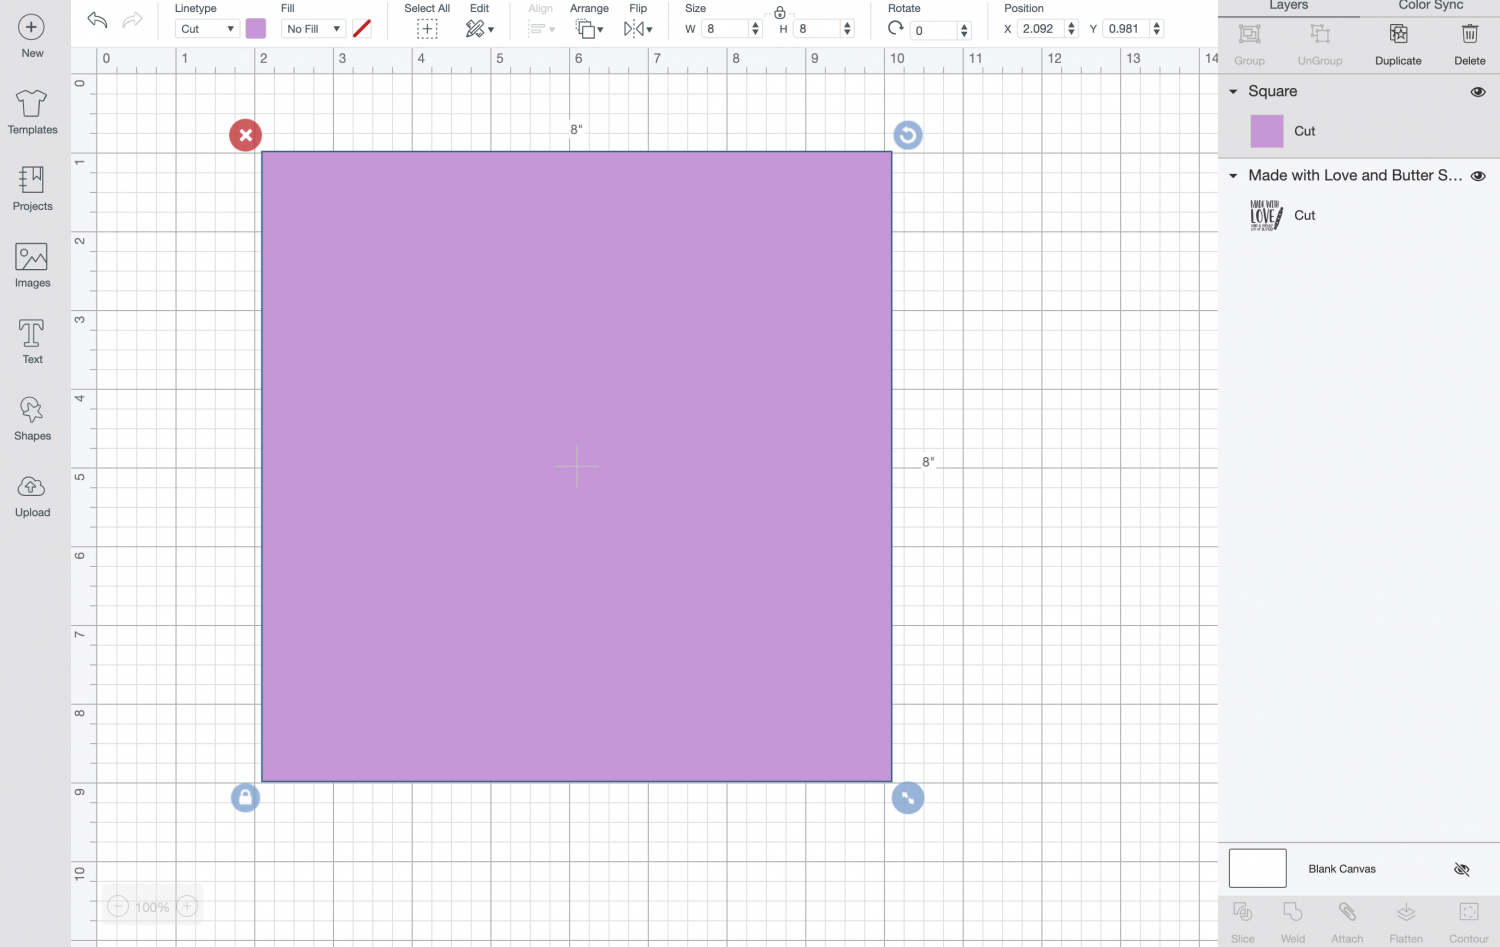 Cricut Design Space: square resized and made purple